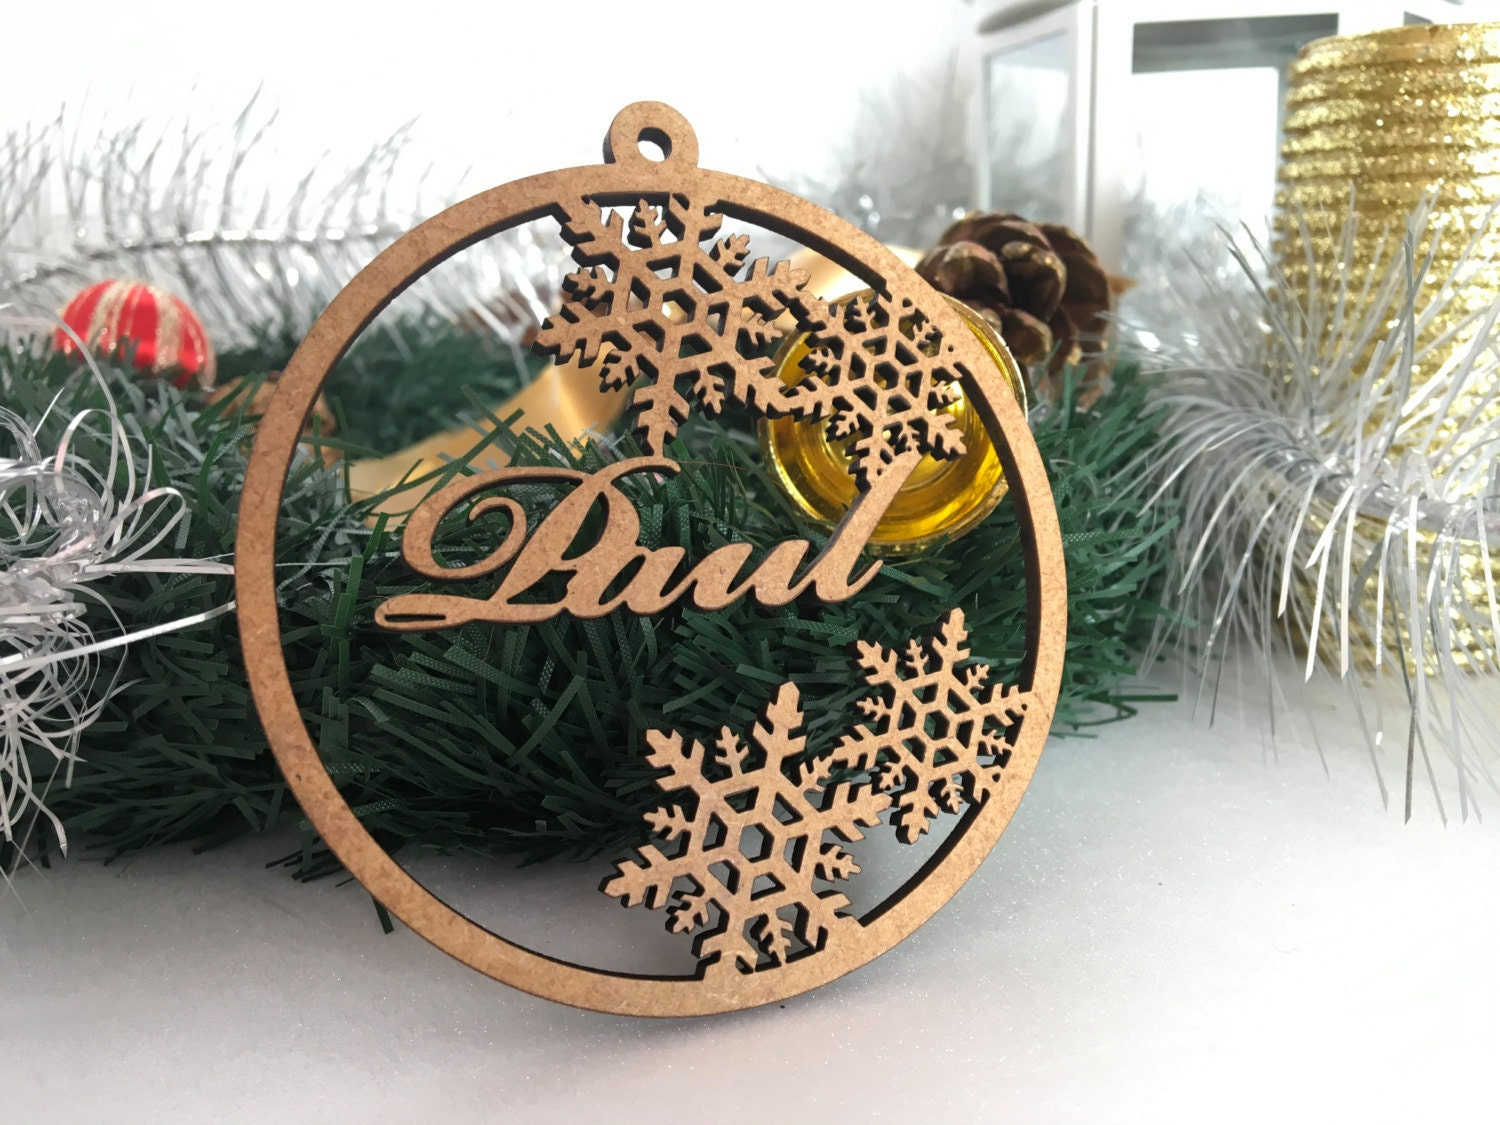 Personalised Bauble Wooden Name Christmas Gift Tags Tree Ornament Decorations Snowflake Xmas Wood Ornaments